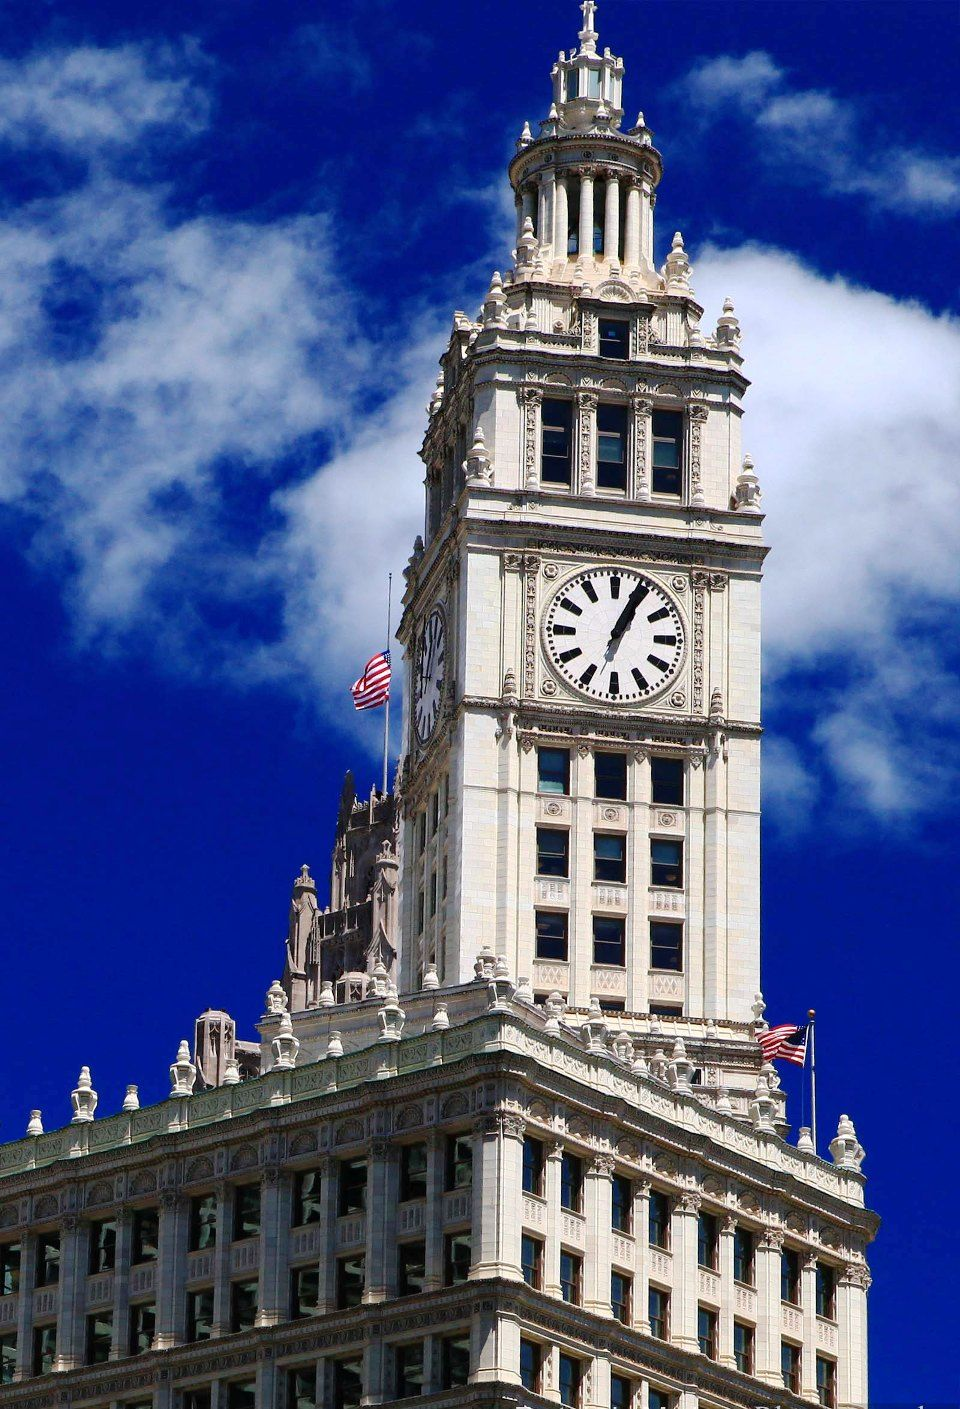 Wrigley Building Clock Tower, Chicago | Clock tower, My ...